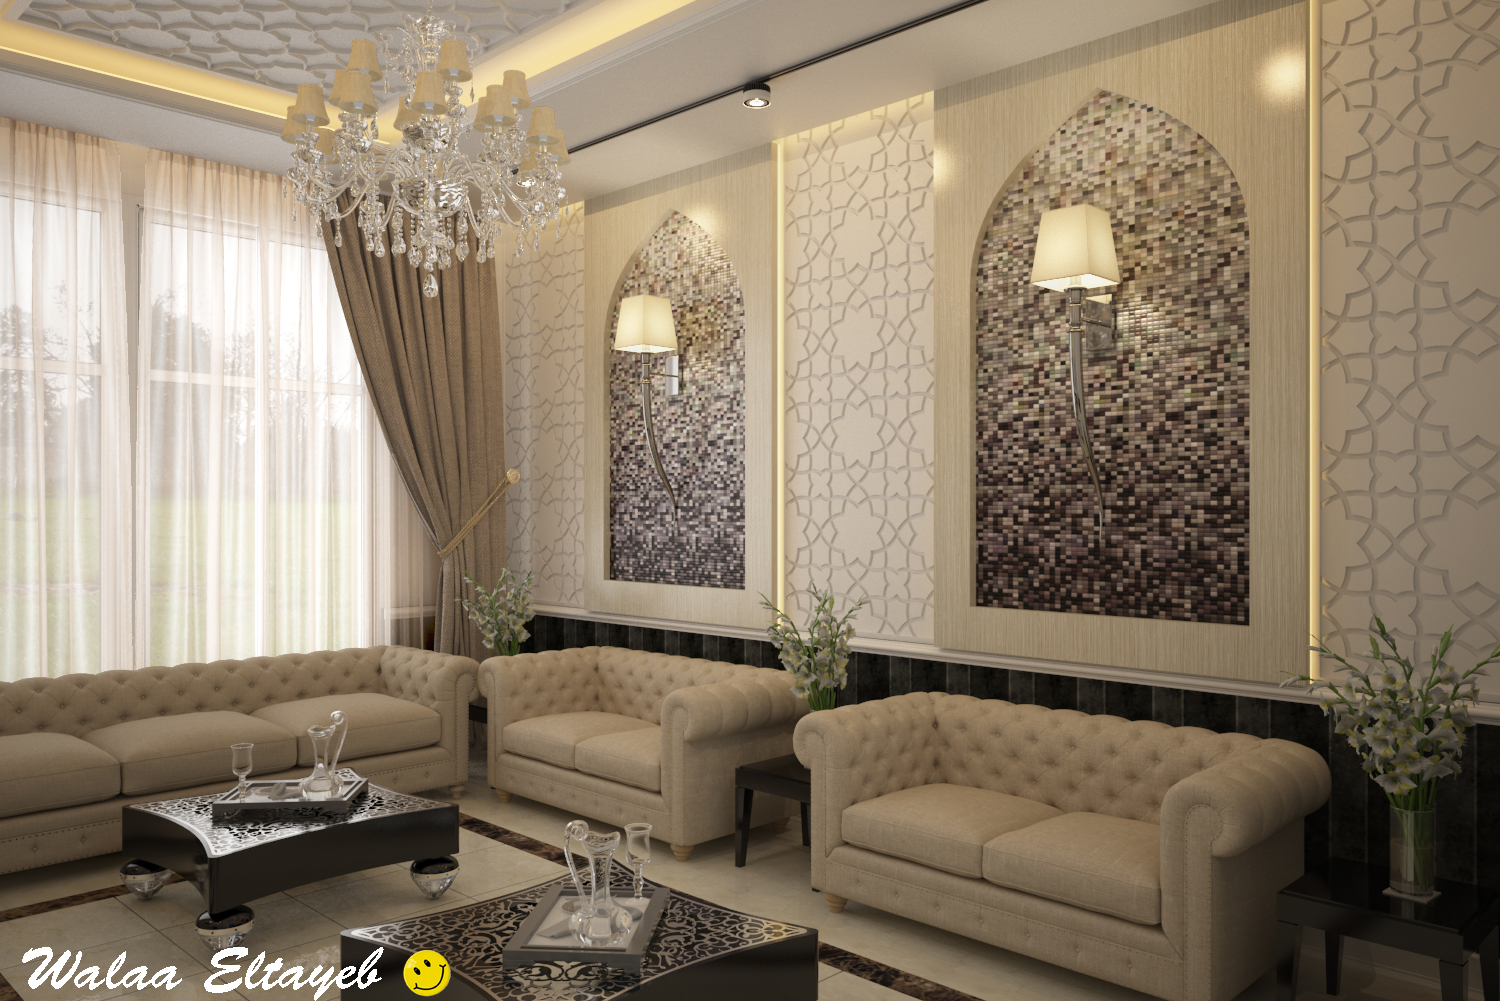 Salon interance hall walaadesigns for Interior designs for hall